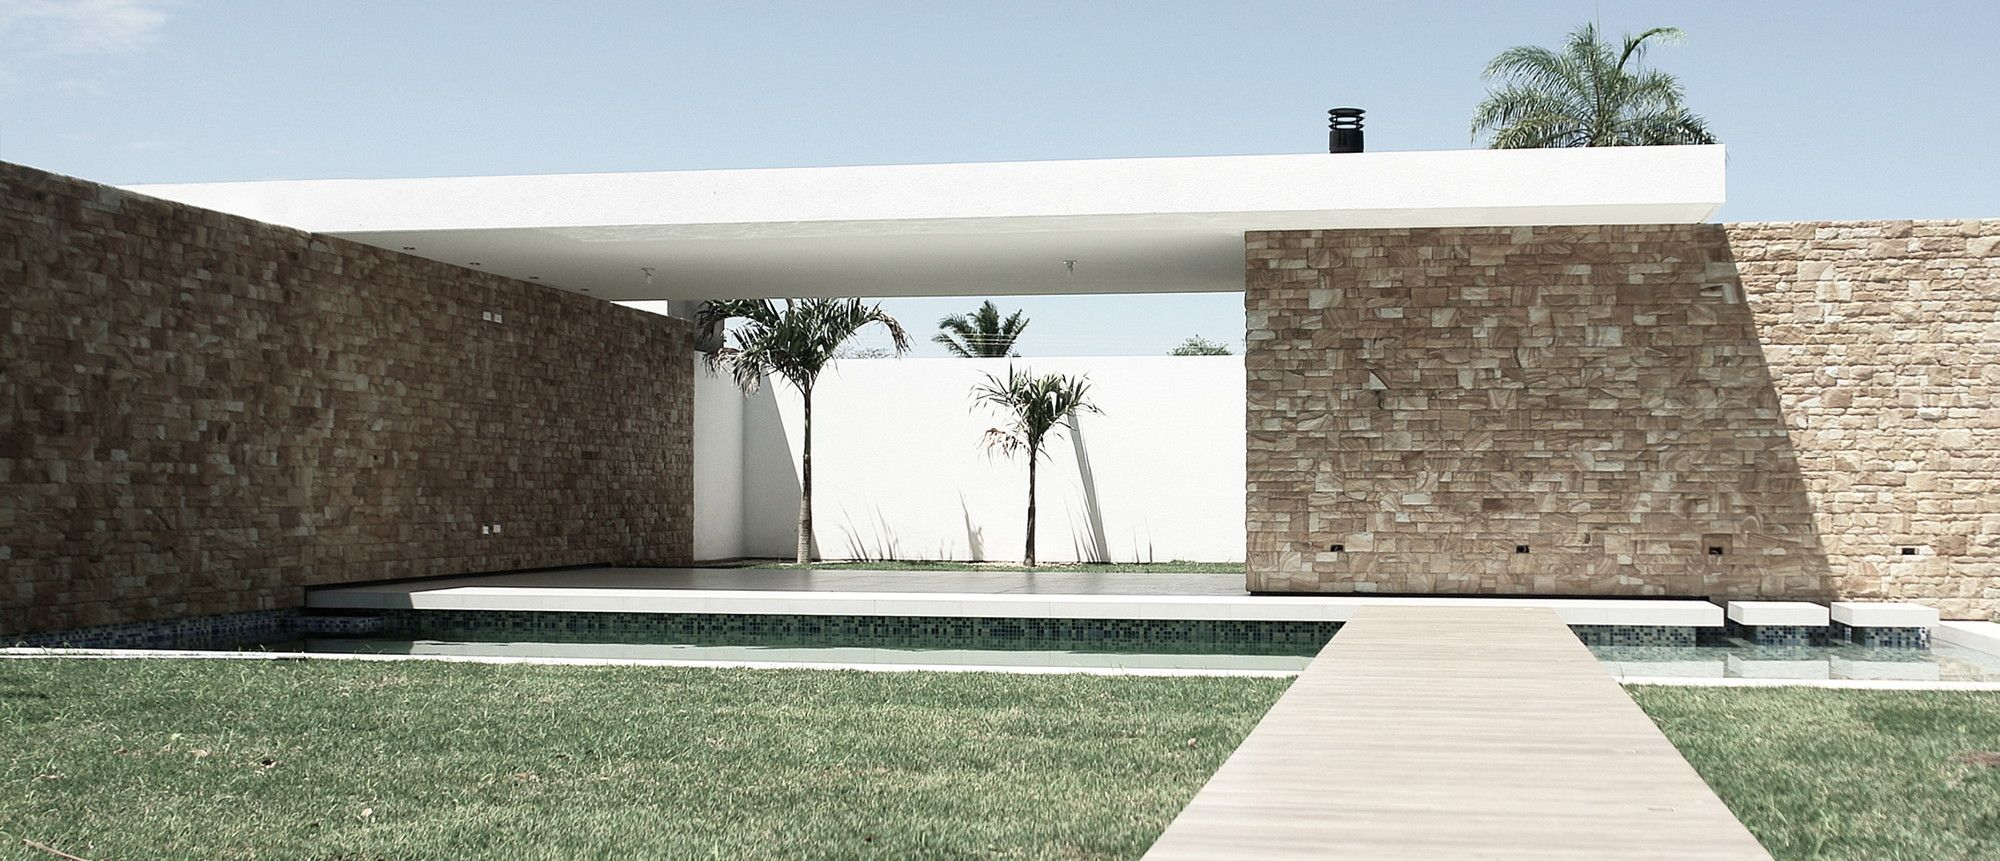 Image 12 of 21 from gallery of c house sommet asociados photograph by